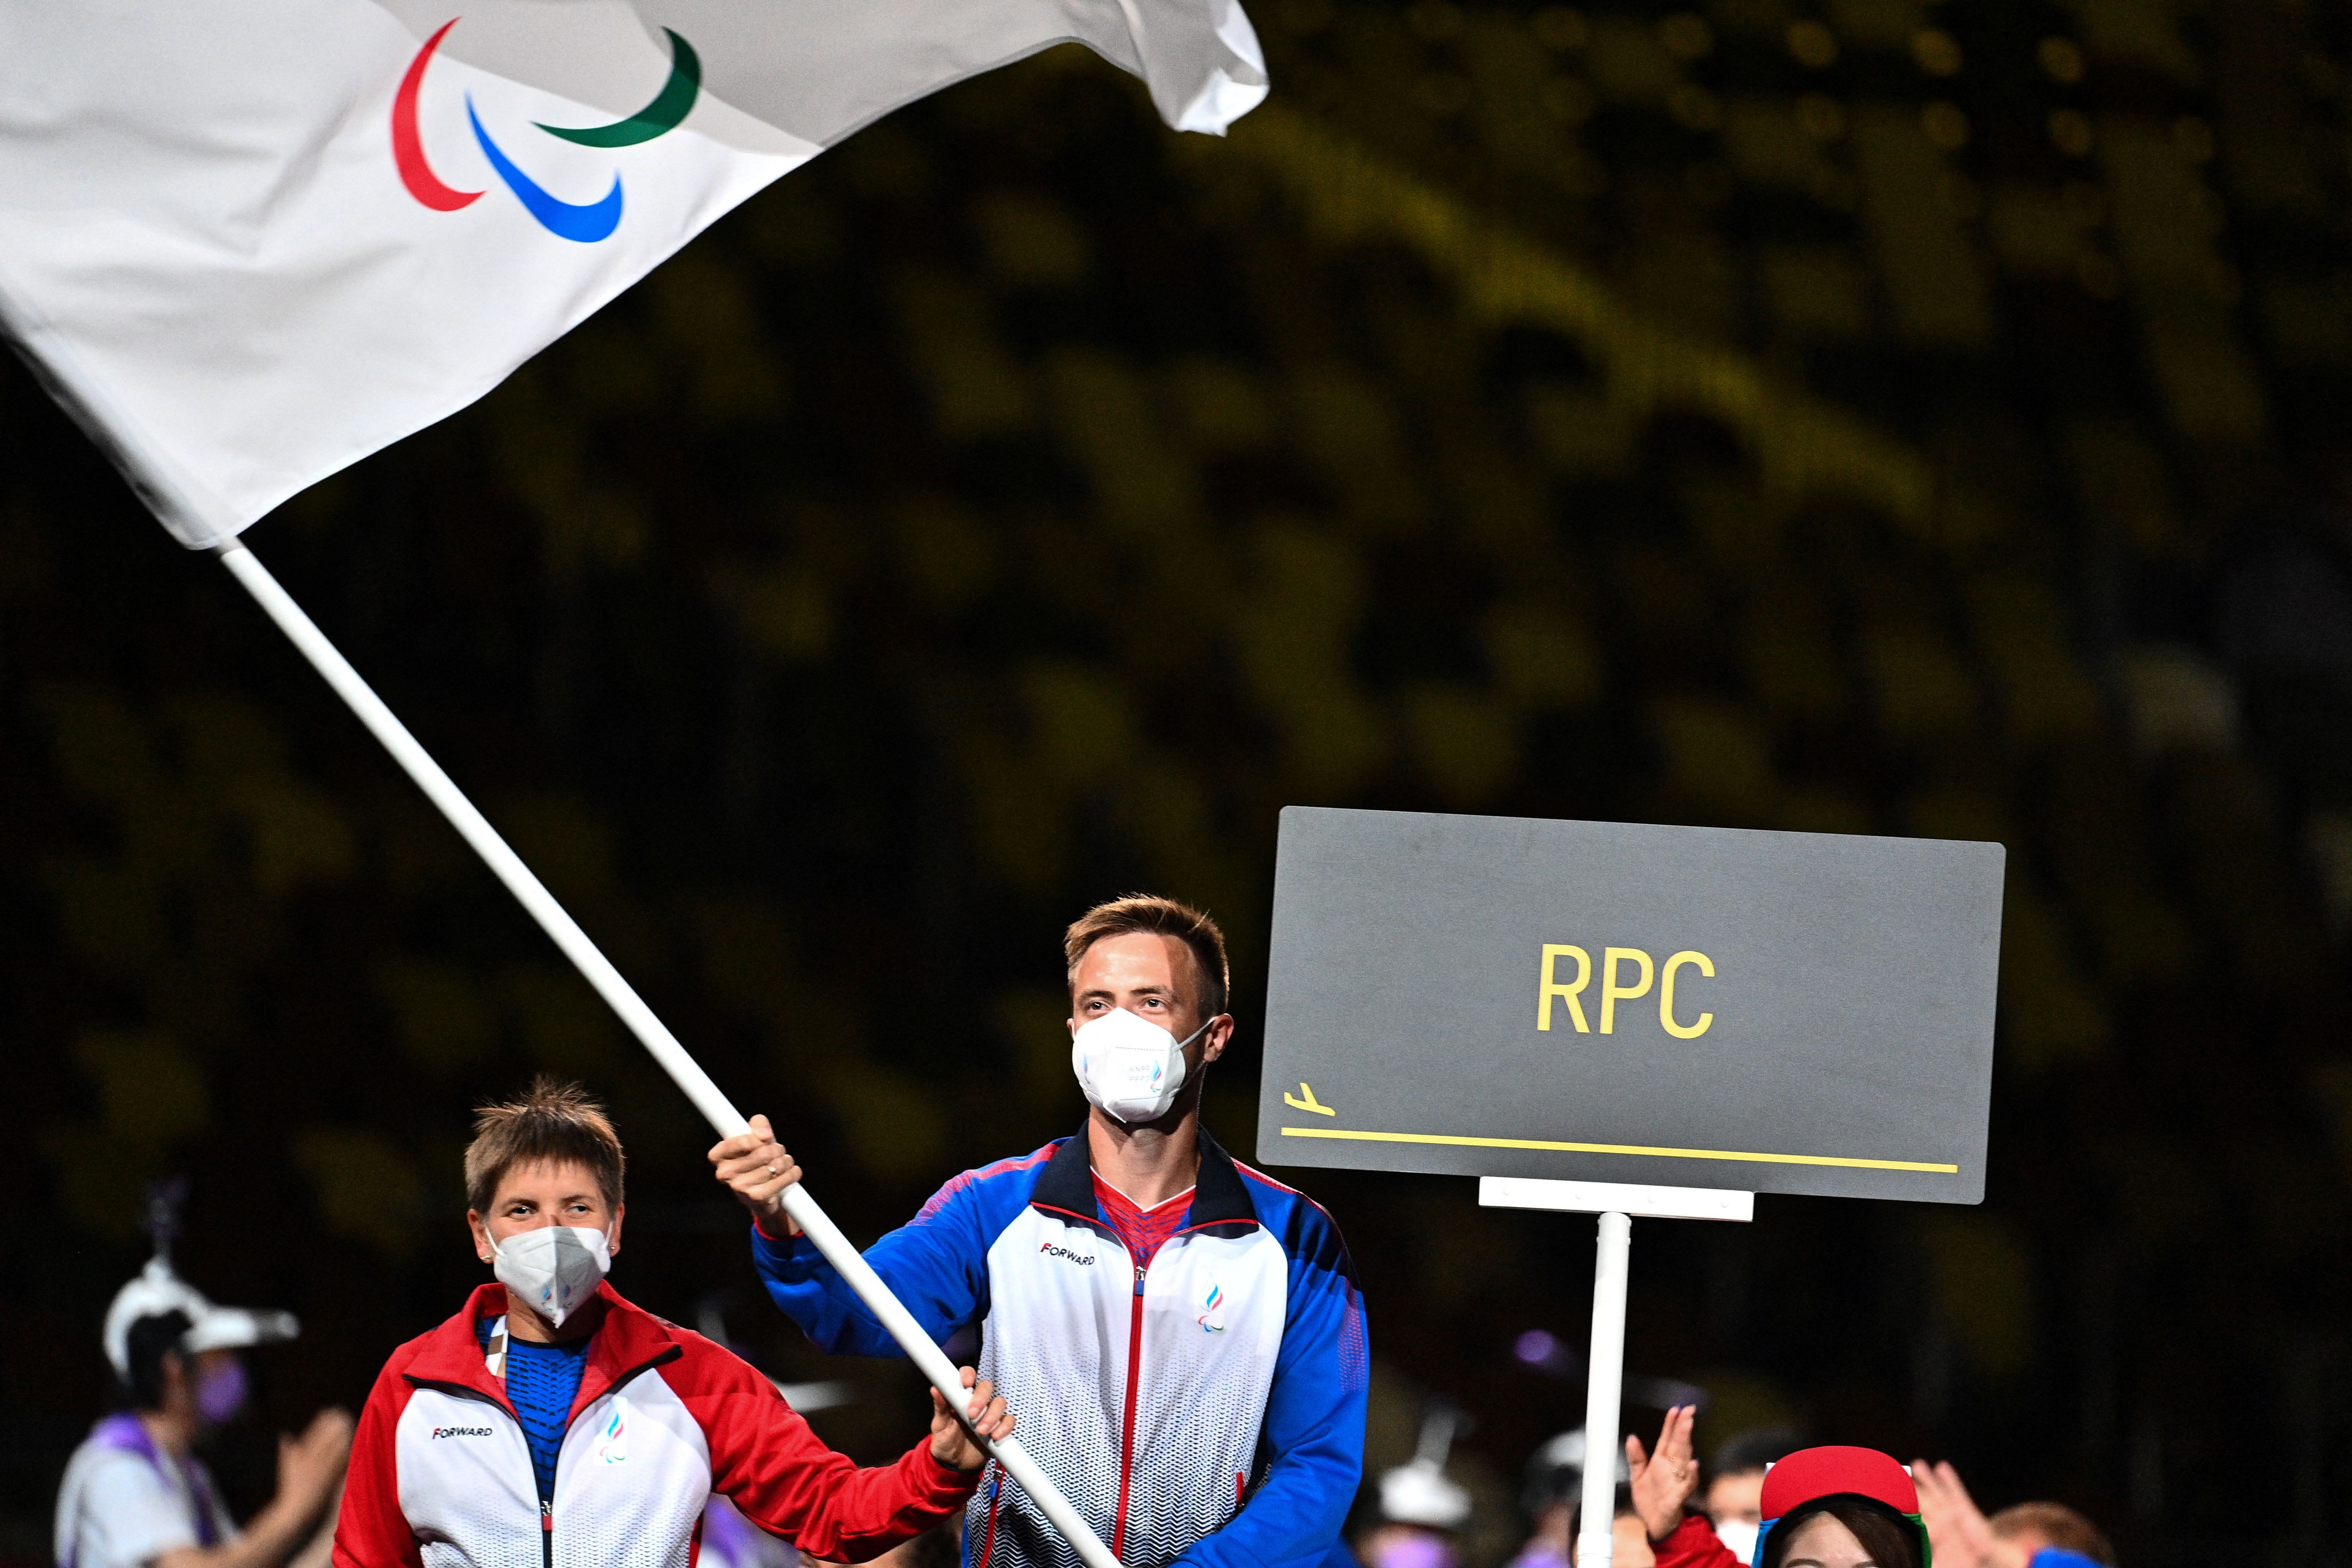 What country is RPC at the Paralympics?